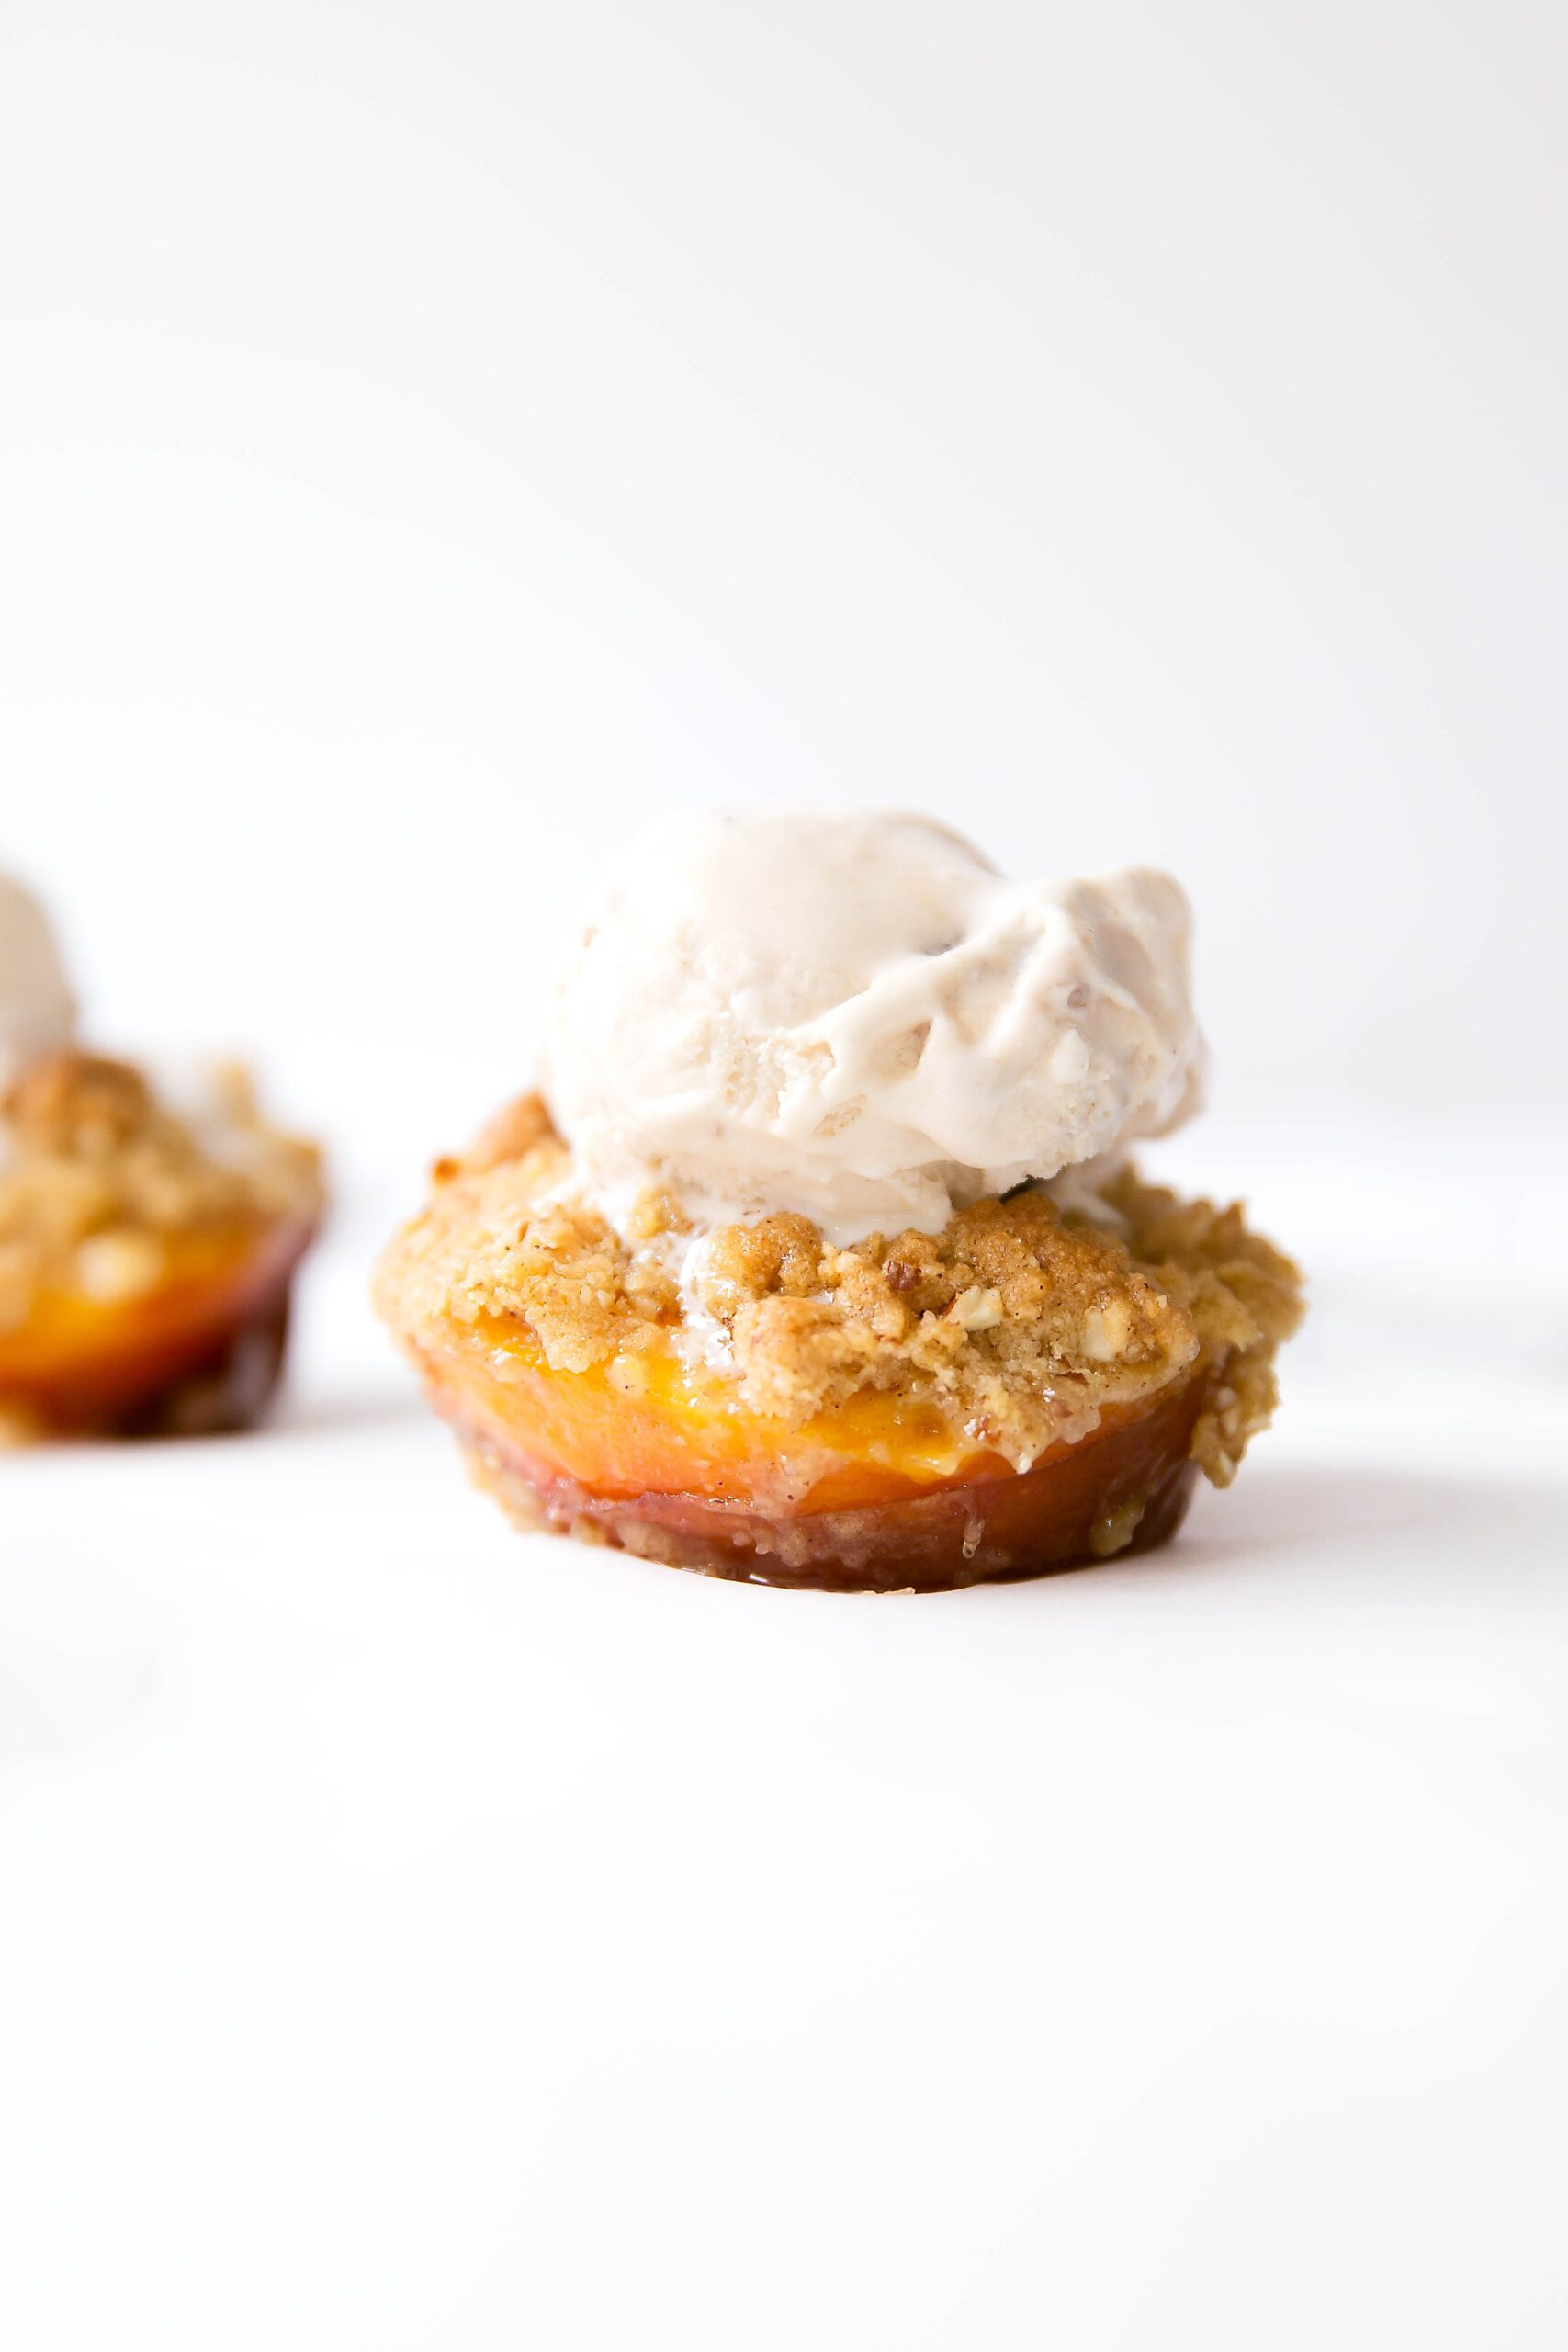 Perfectly roasted peaches with an addicting oatmeal almond crumble